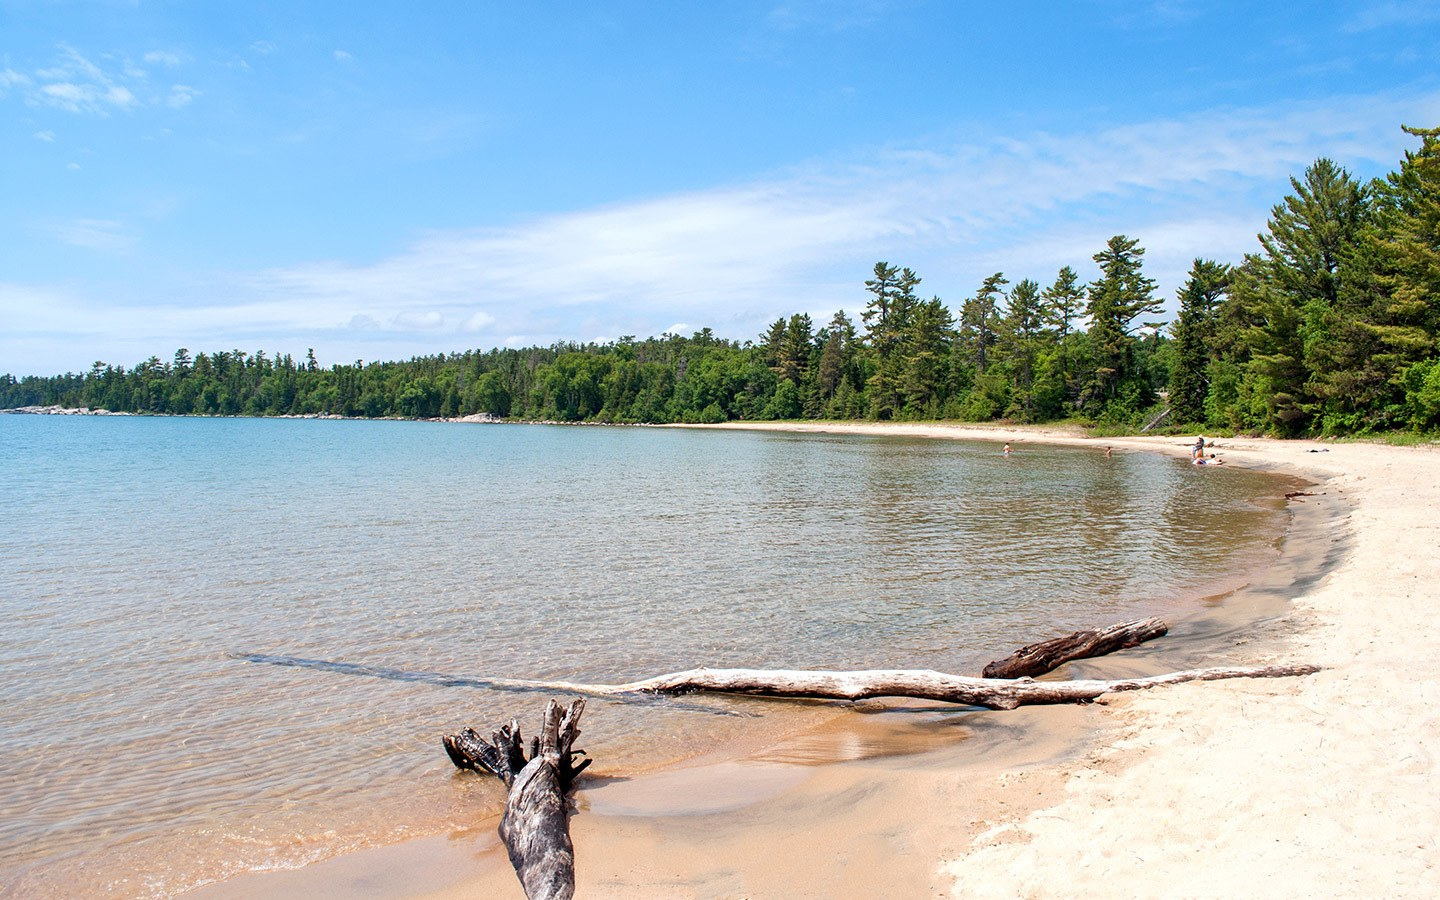 Beach at Lake Superior Provincial Park in Ontario